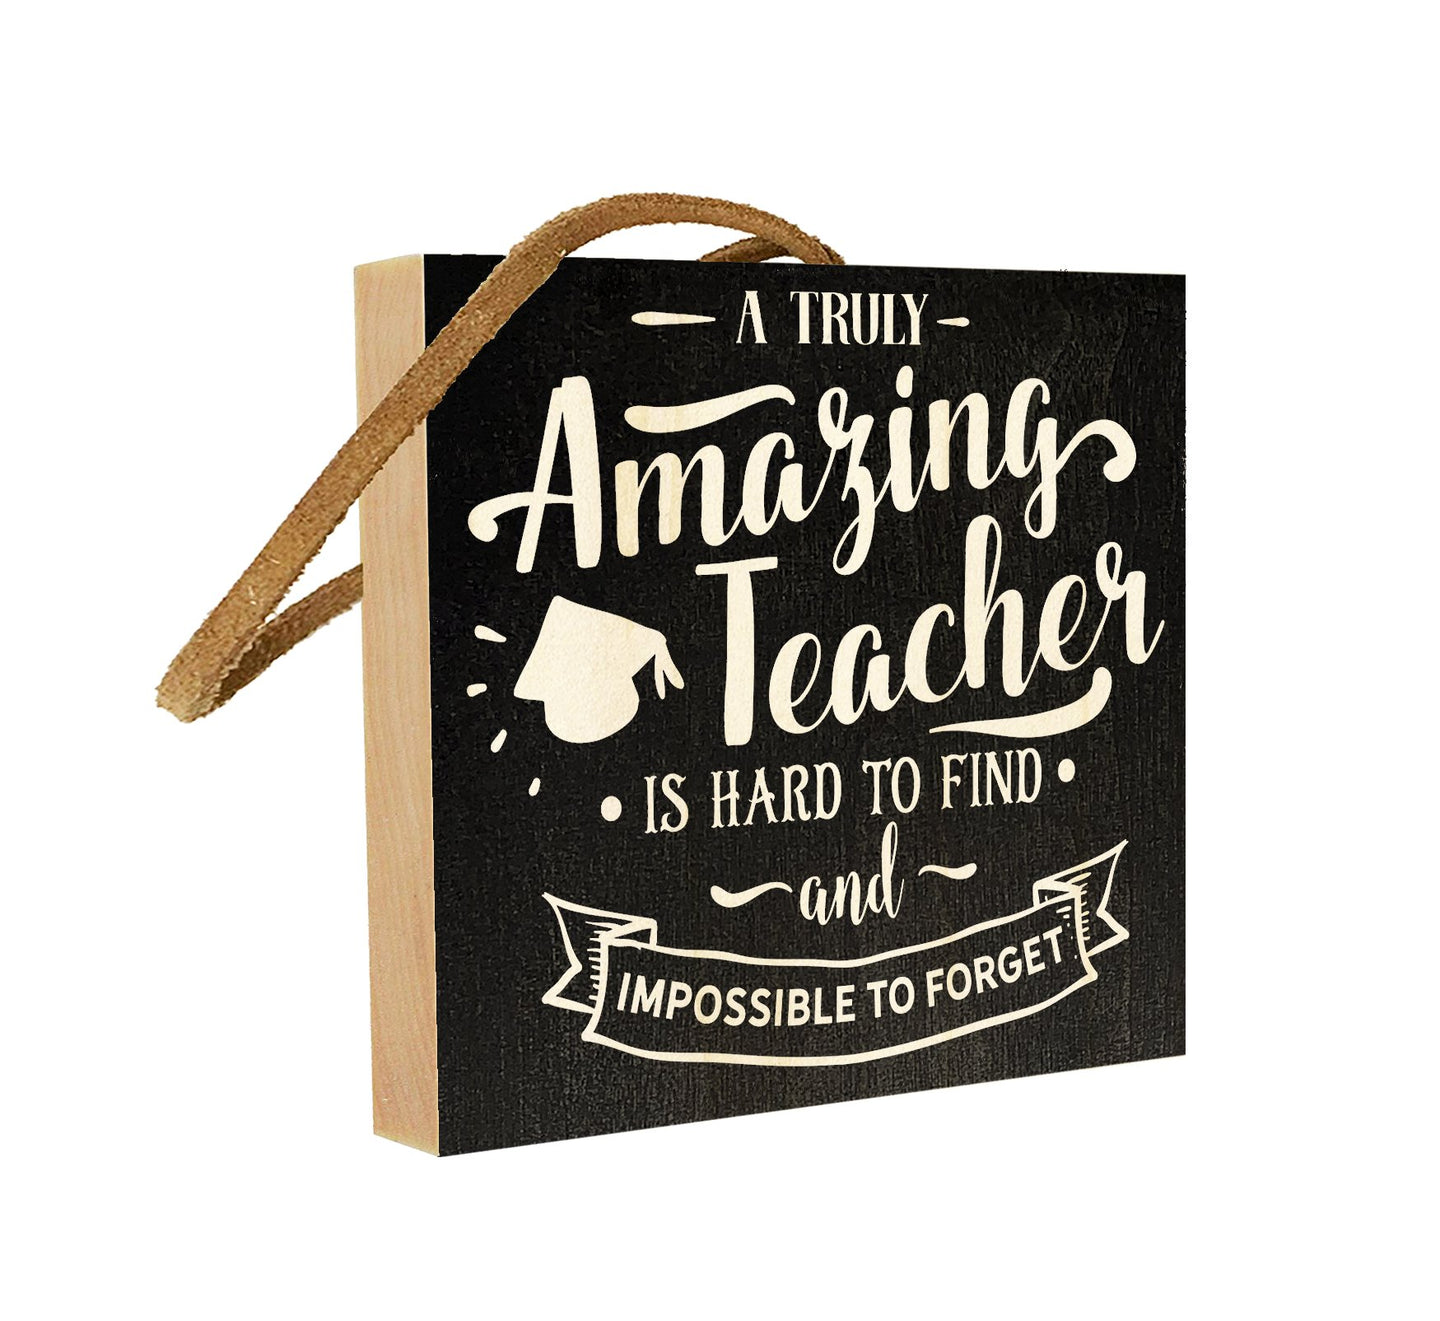 A Truly Amazing Teacher is Hard to Find and Impossible to Forget.